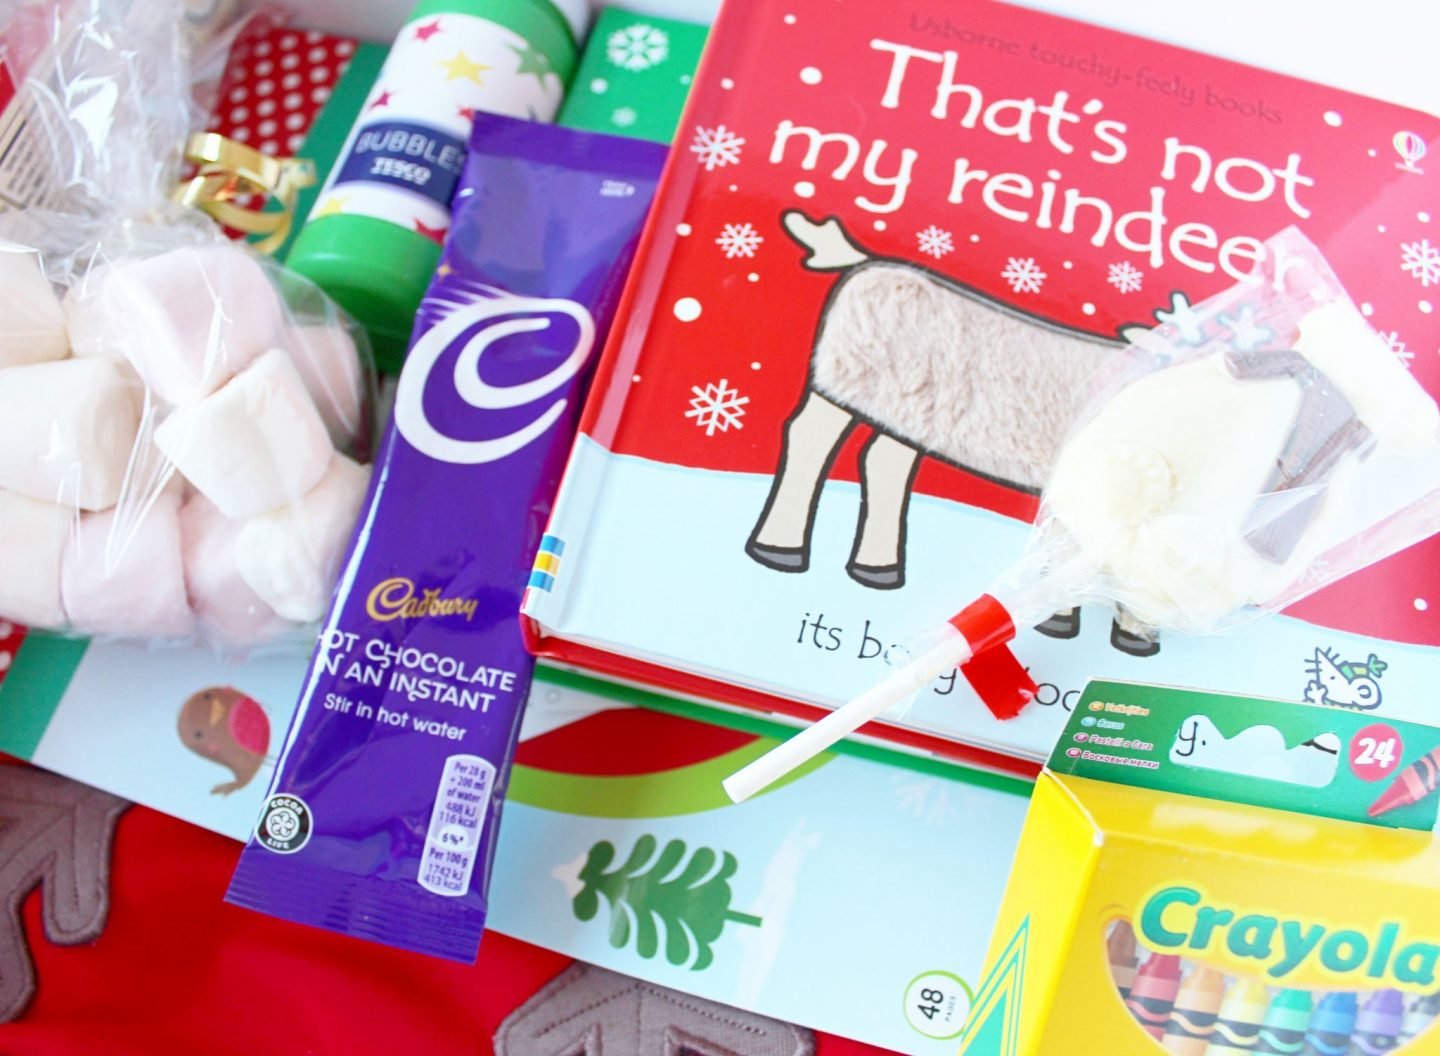 20 Christmas Eve Box Ideas | The Countdown begins...